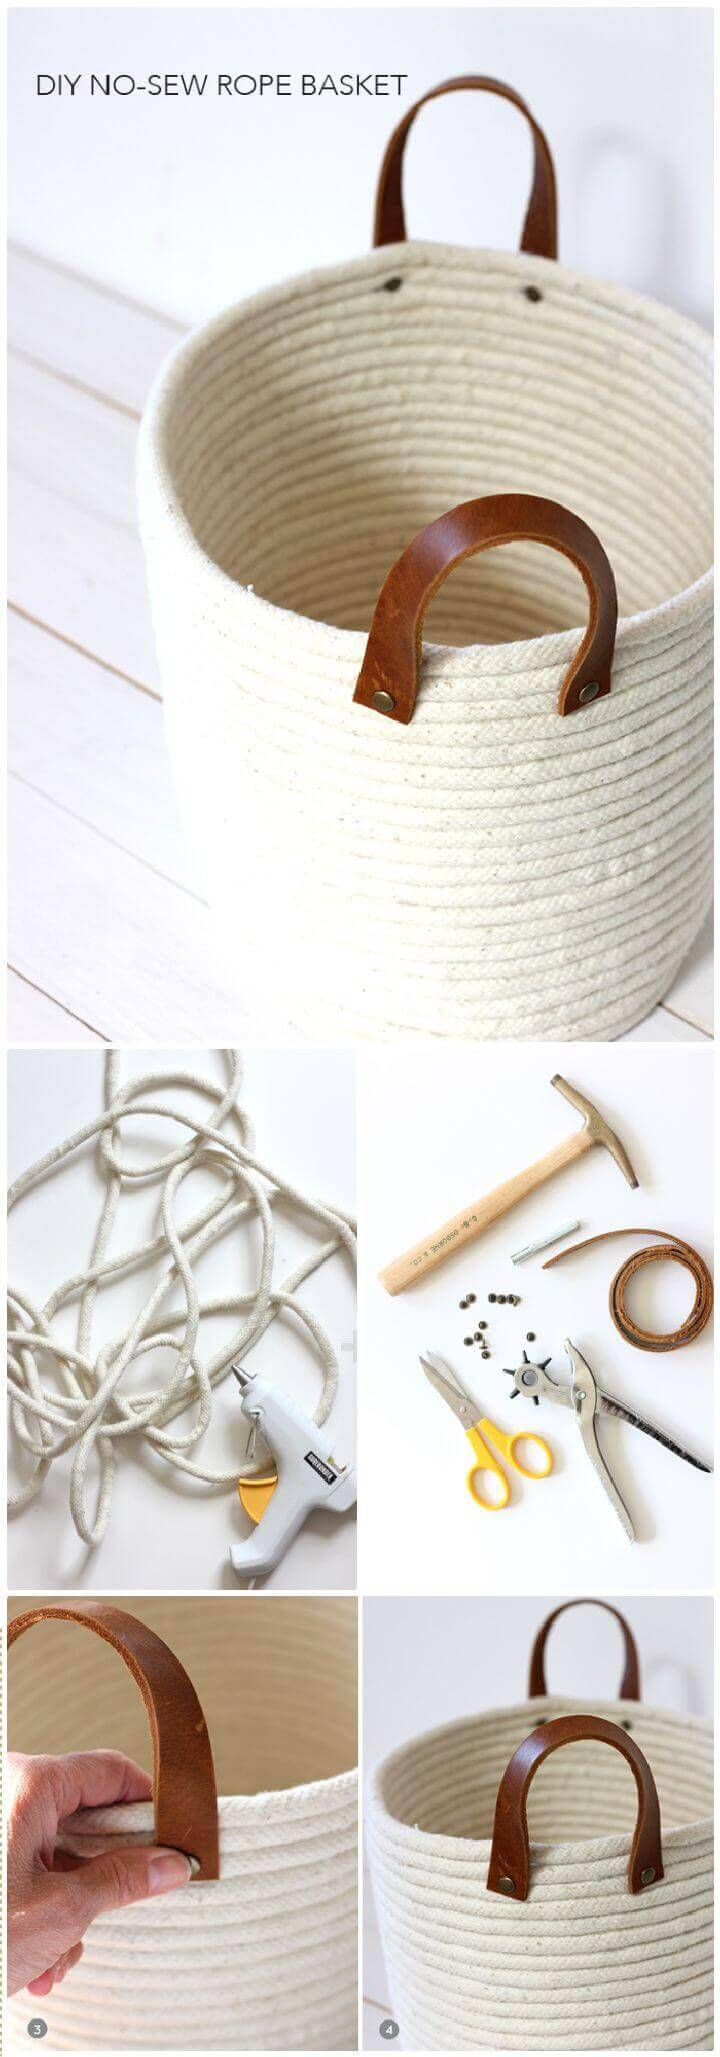 DIY A No-Sew Rope Coil Basket